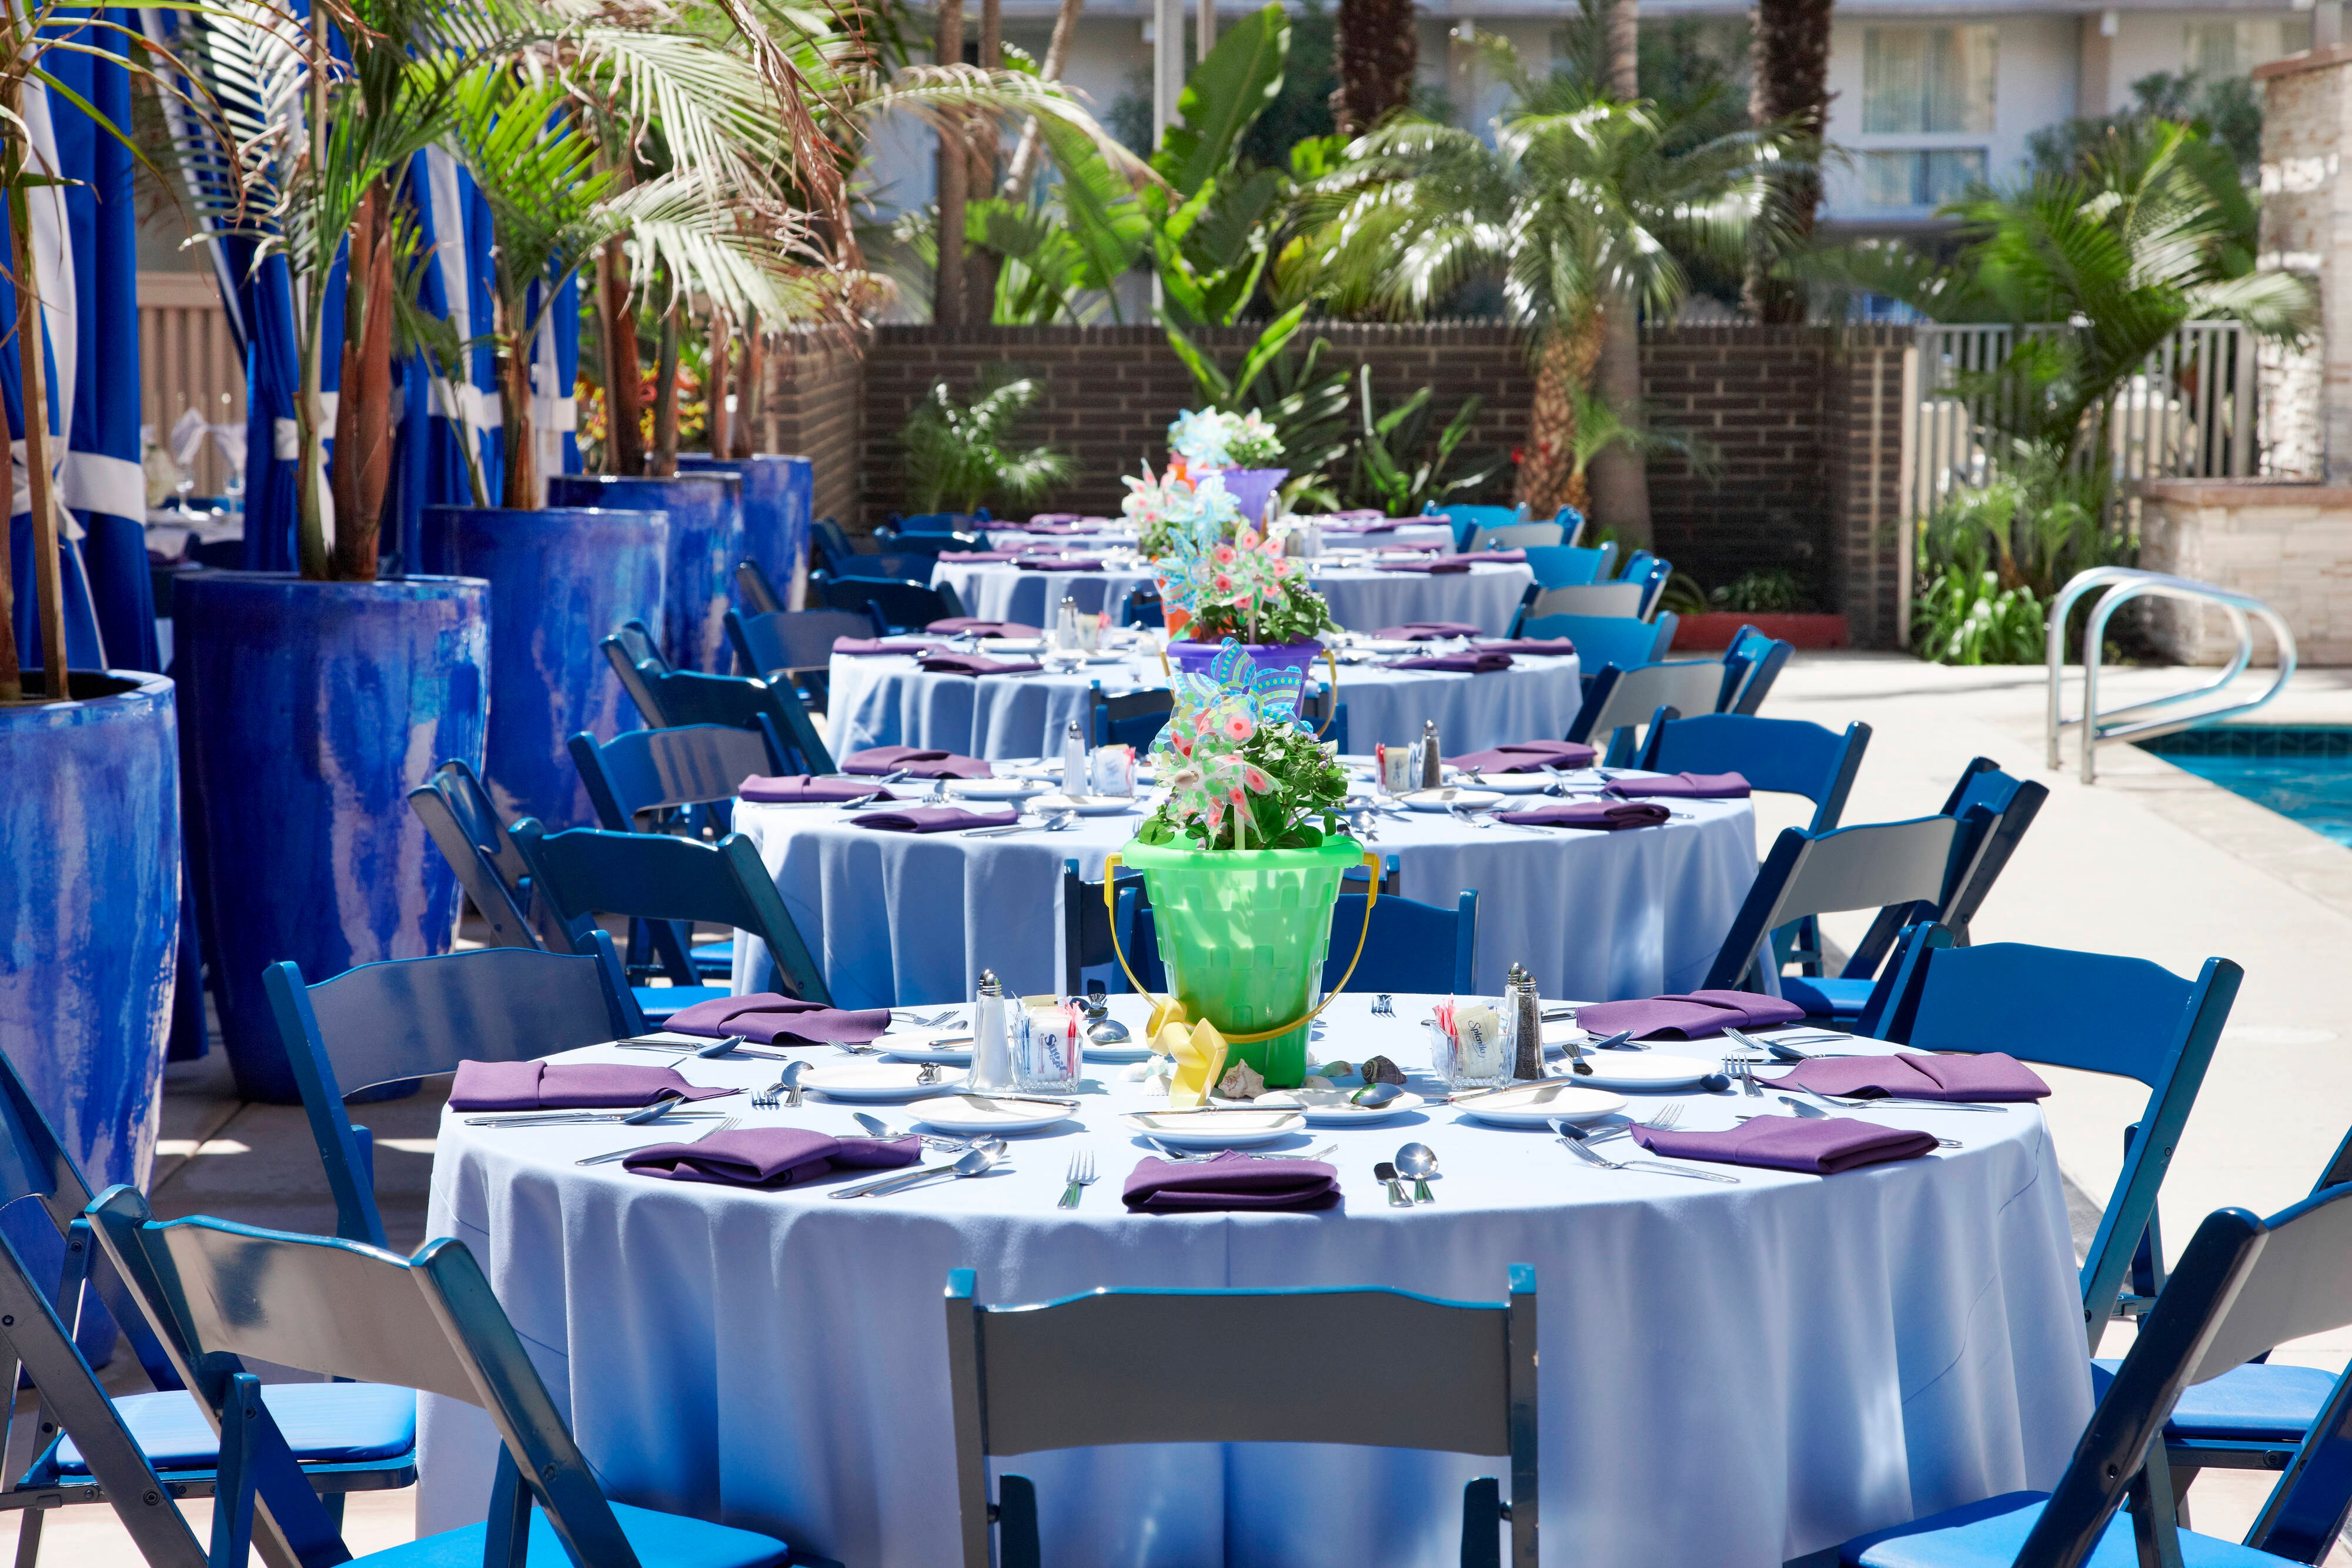 Table Setting with blue chairs